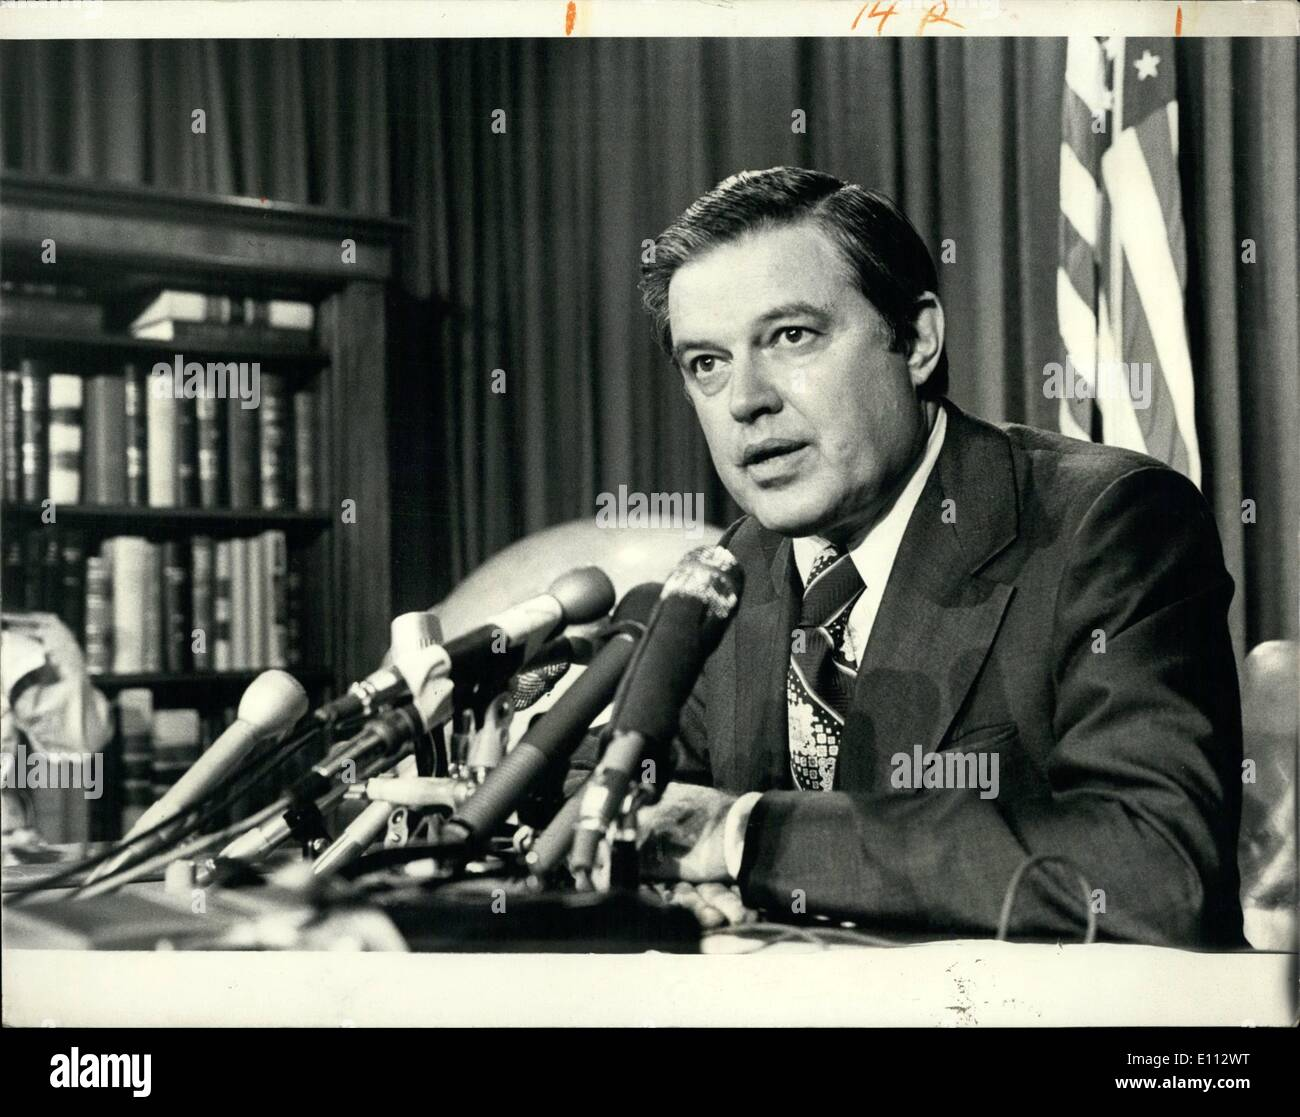 Jun. 06, 1975 - Senator Frank Church (Democrat of Idaho) chairman of the Senate Special Commission on Intelligence which is currently investigating CIA involvement in Assasination - Stock Image